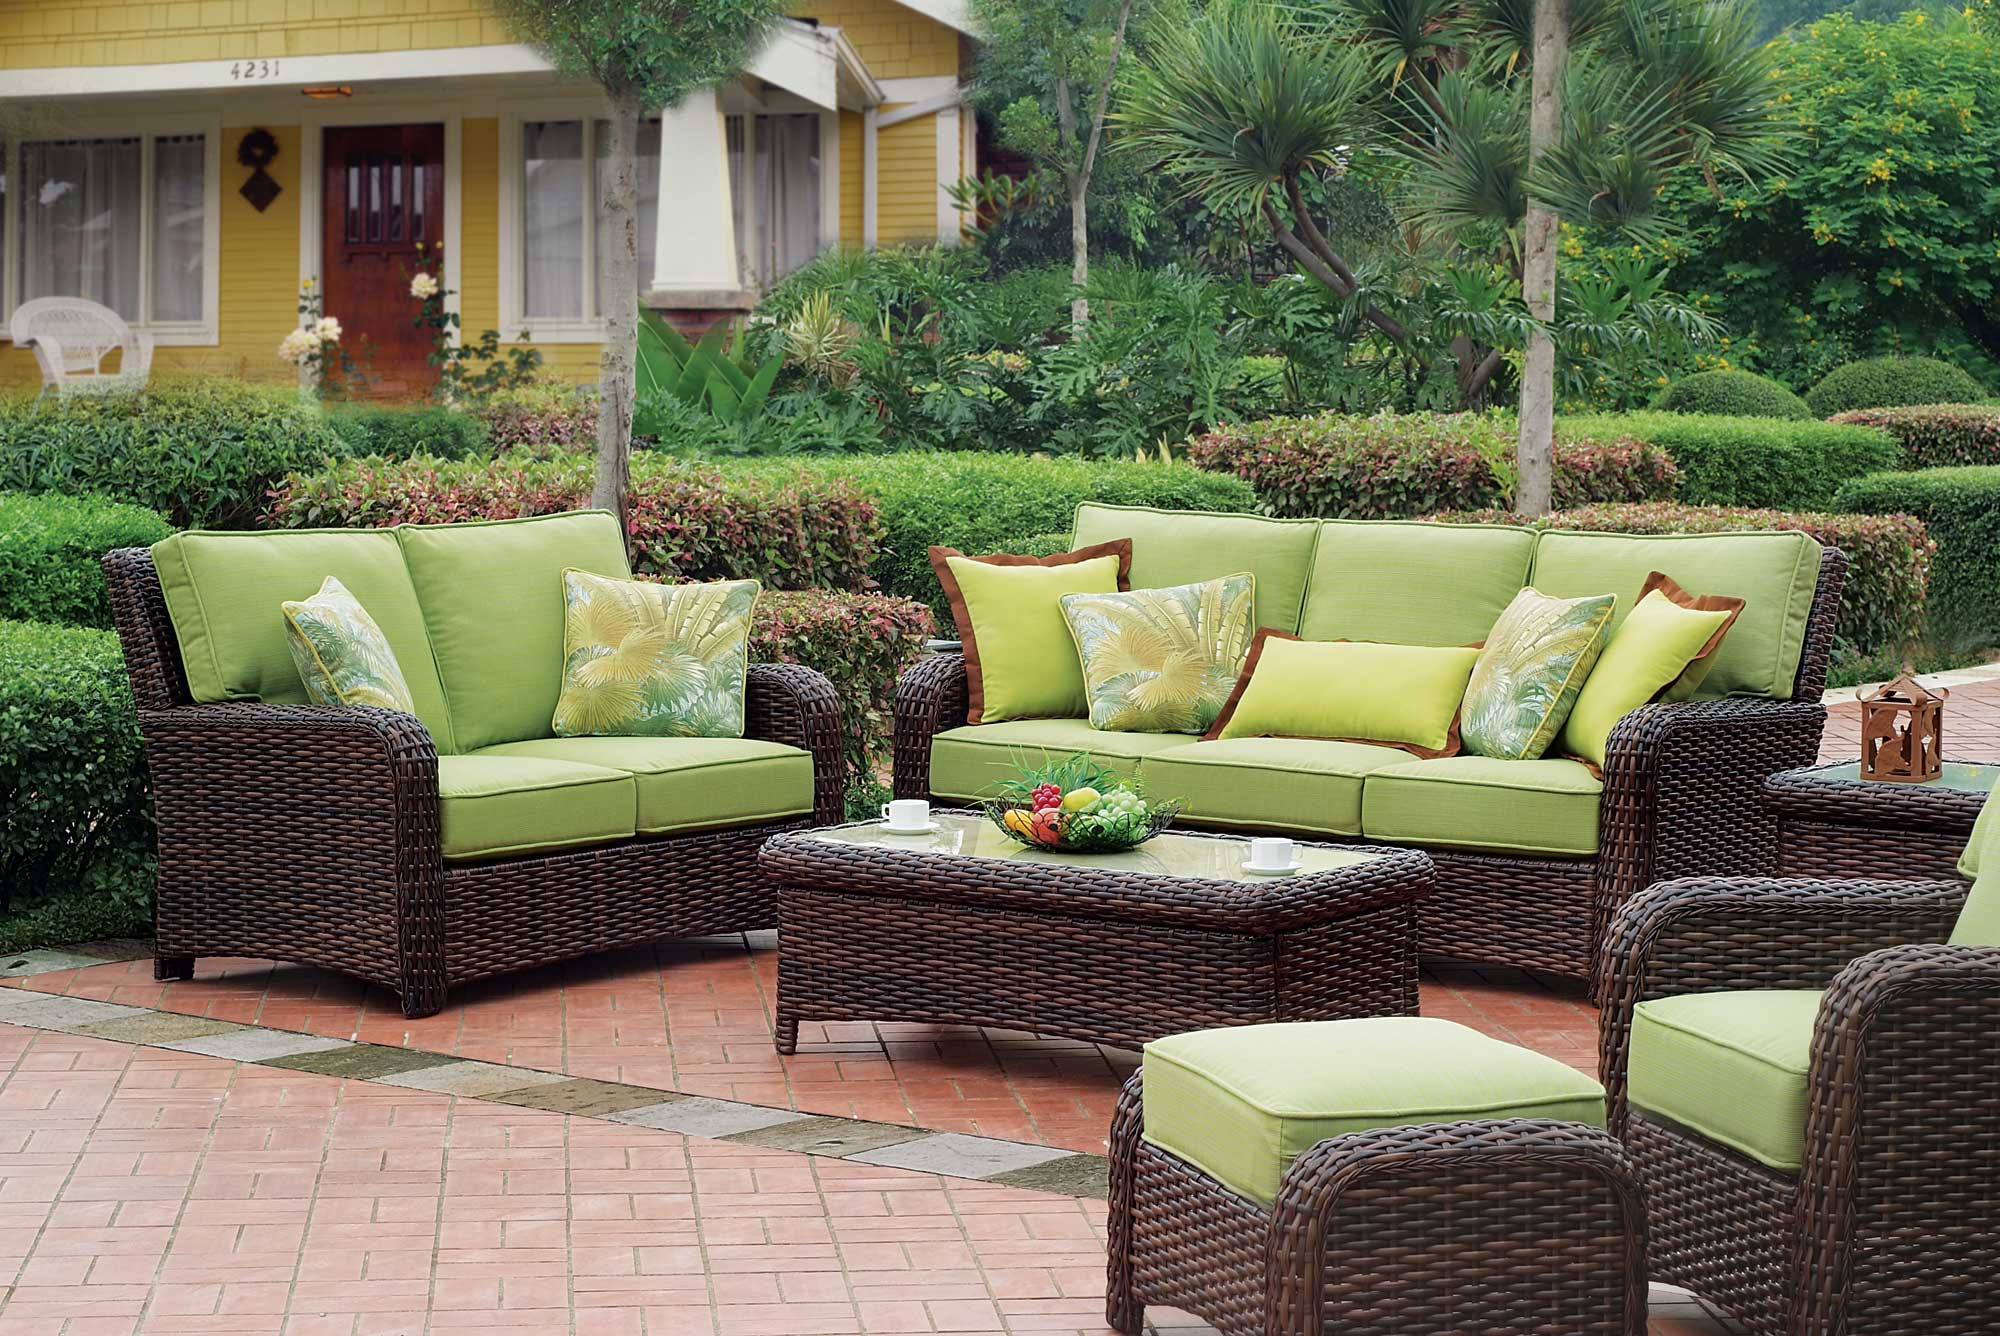 wicker furniture outdoor living: tips for keeping your rattan furniture looking new - the  fashionable housewife BZKIXSK